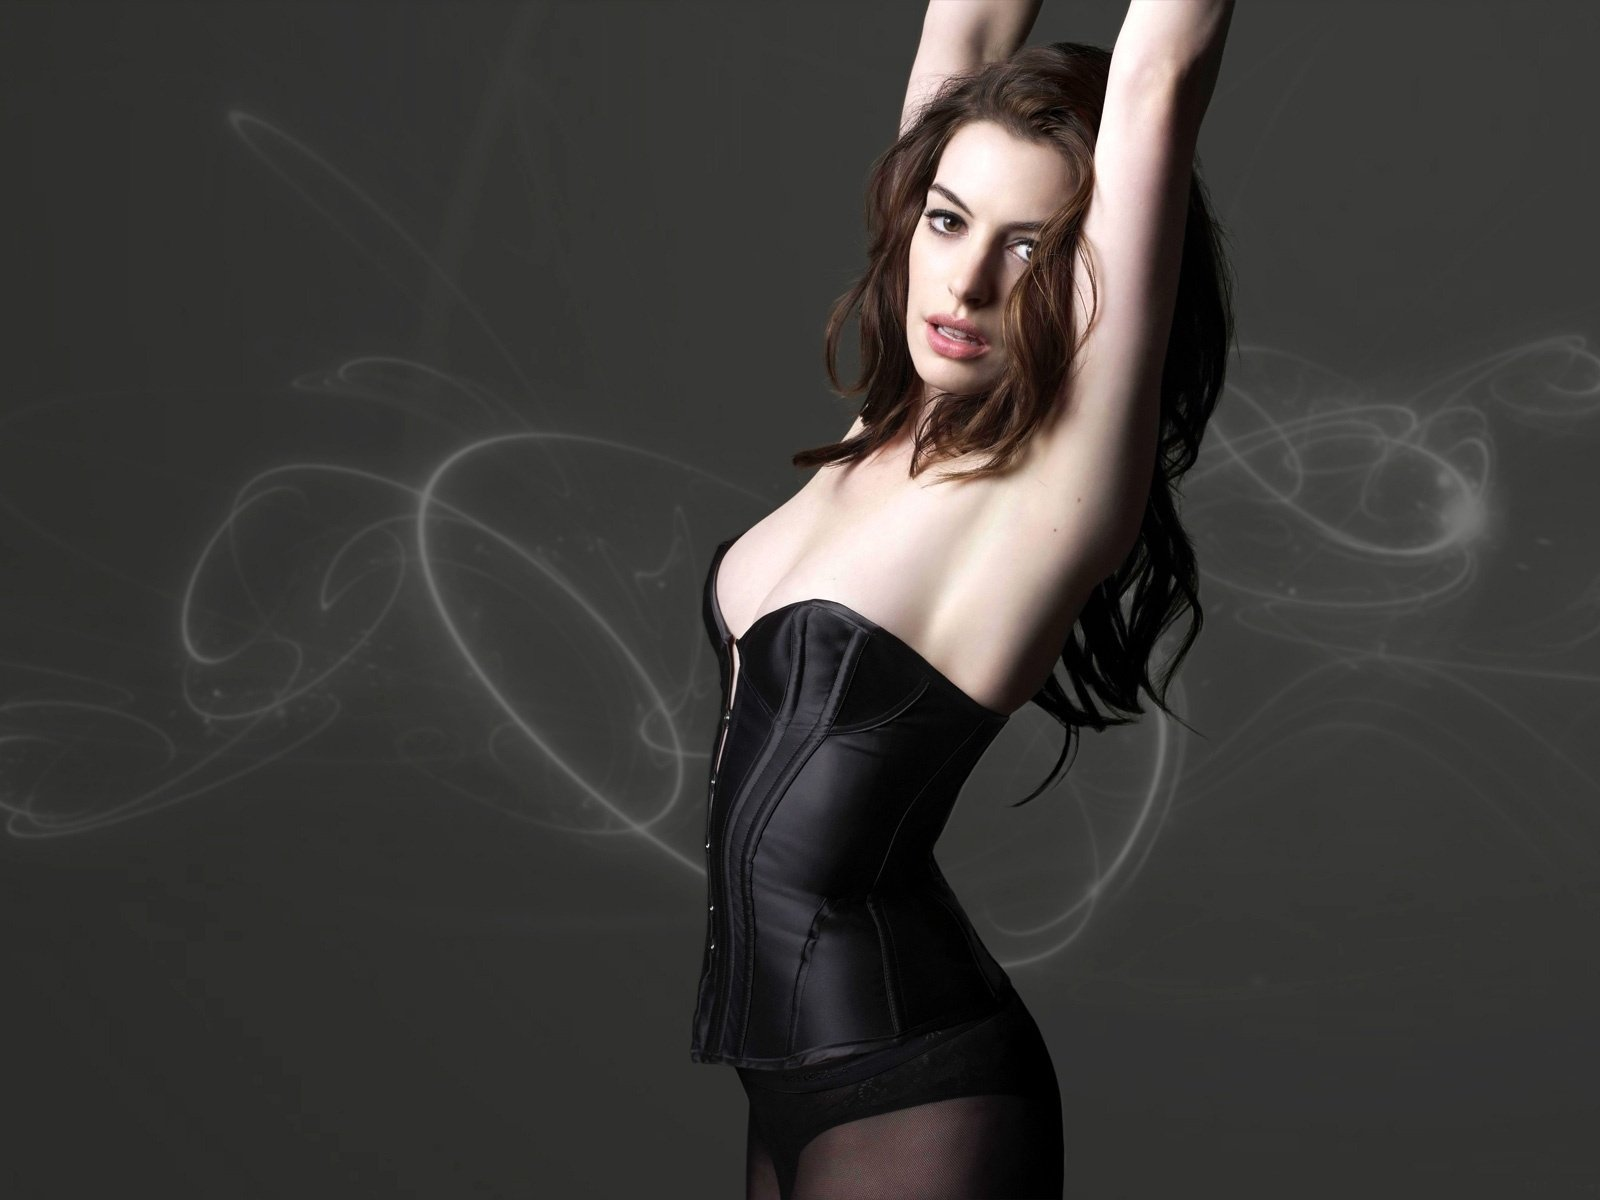 1600x1200 - Anne Hathaway Wallpapers 31